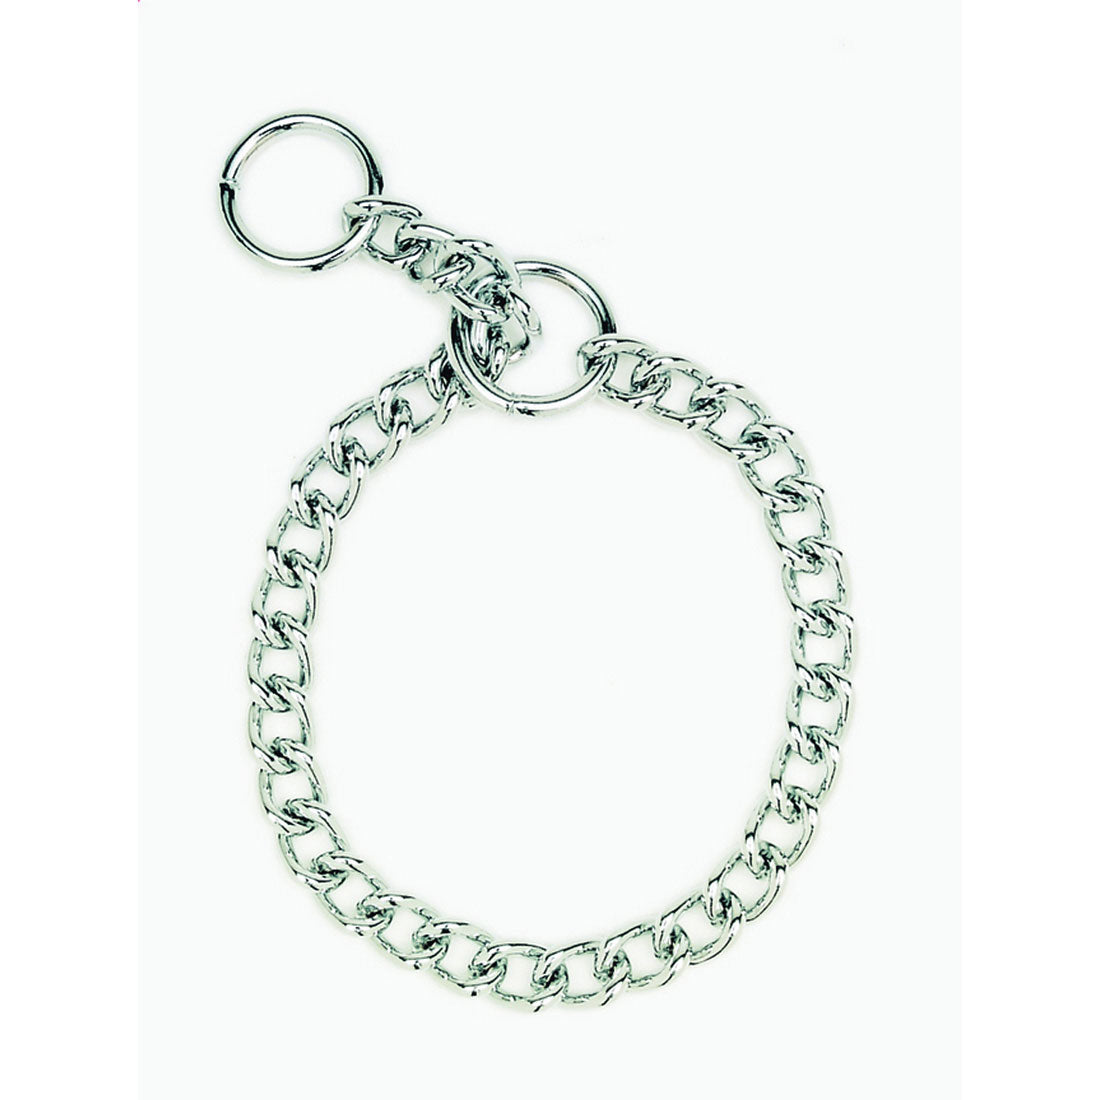 "Coastal Pet Products Herm. Sprenger Dog Chain Training Collar 2.0mm 20"" Silver Dog Collars and Leashes - London the Local"